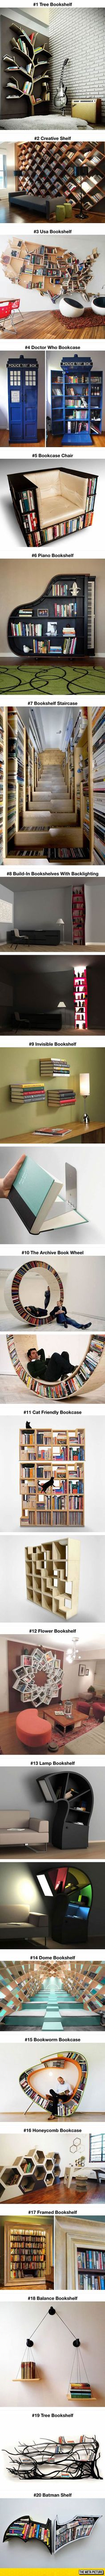 Probably The Most Creative Bookshelves Ever: